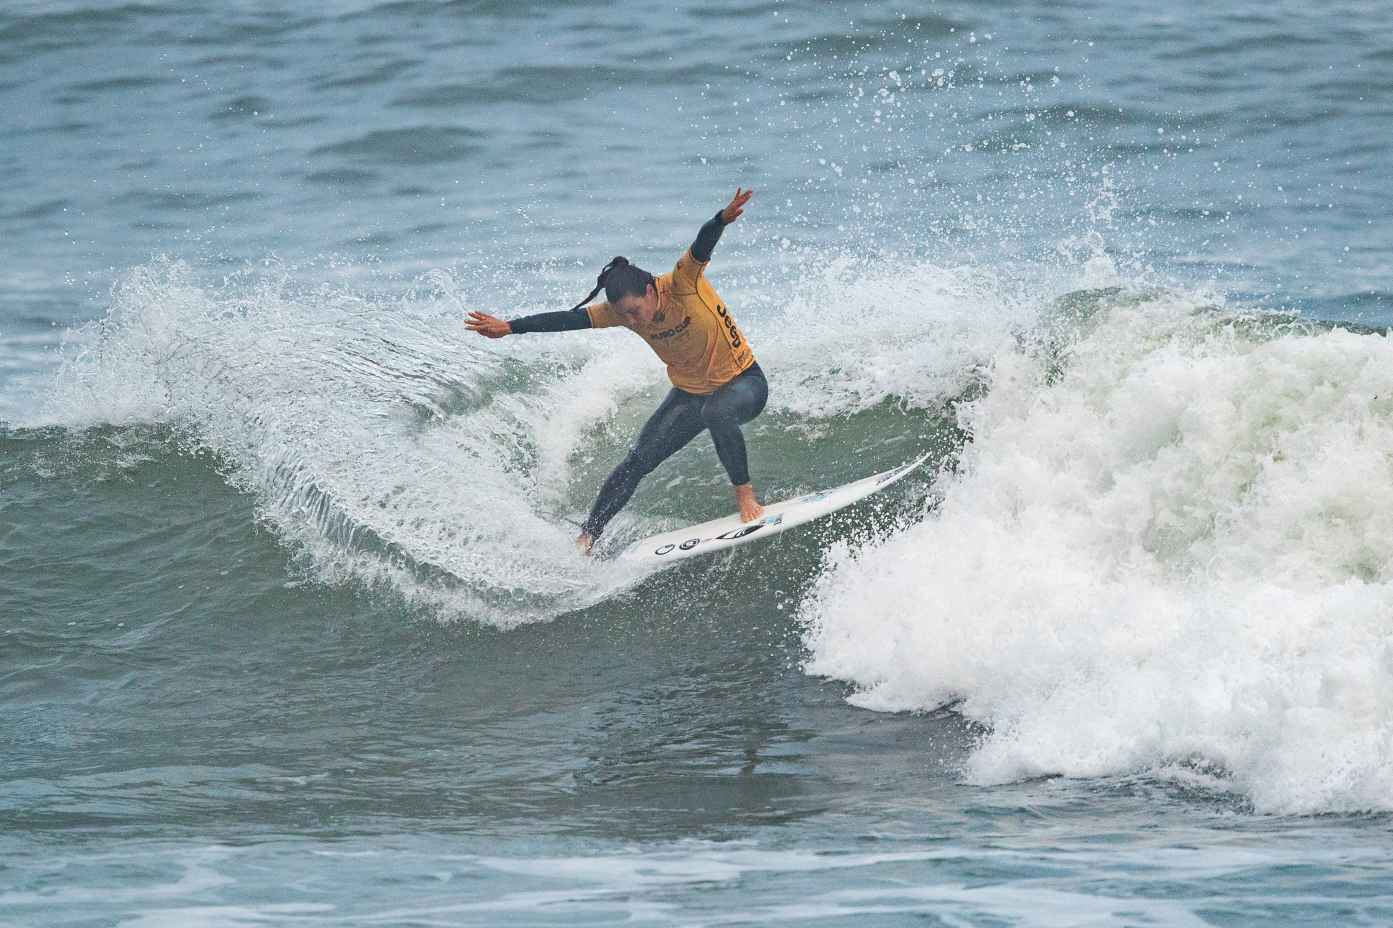 portugal wsl meo surf30 defay j6123MeoPortugal20Poullenot